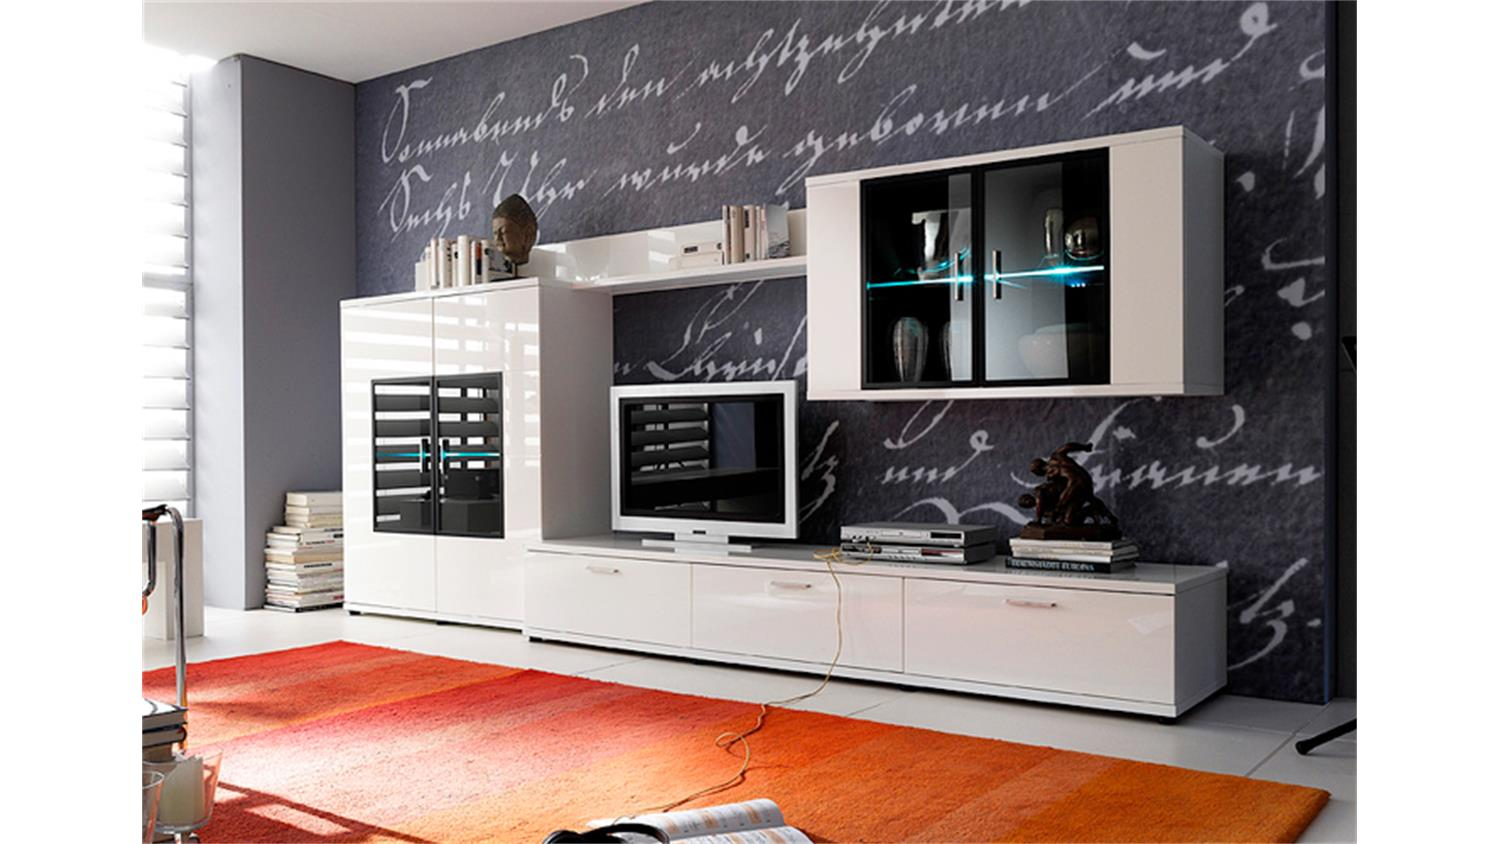 h ngeschrank corano wohnzimmer vitrine hochglanz wei. Black Bedroom Furniture Sets. Home Design Ideas